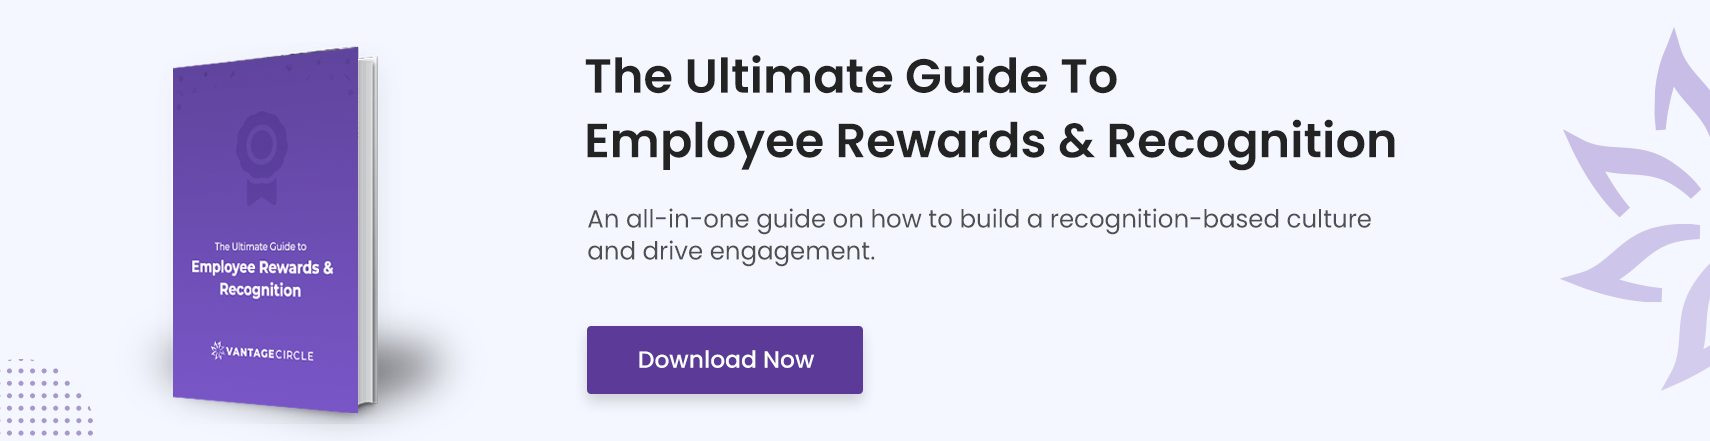 employee-rewards-and-recognition-banner